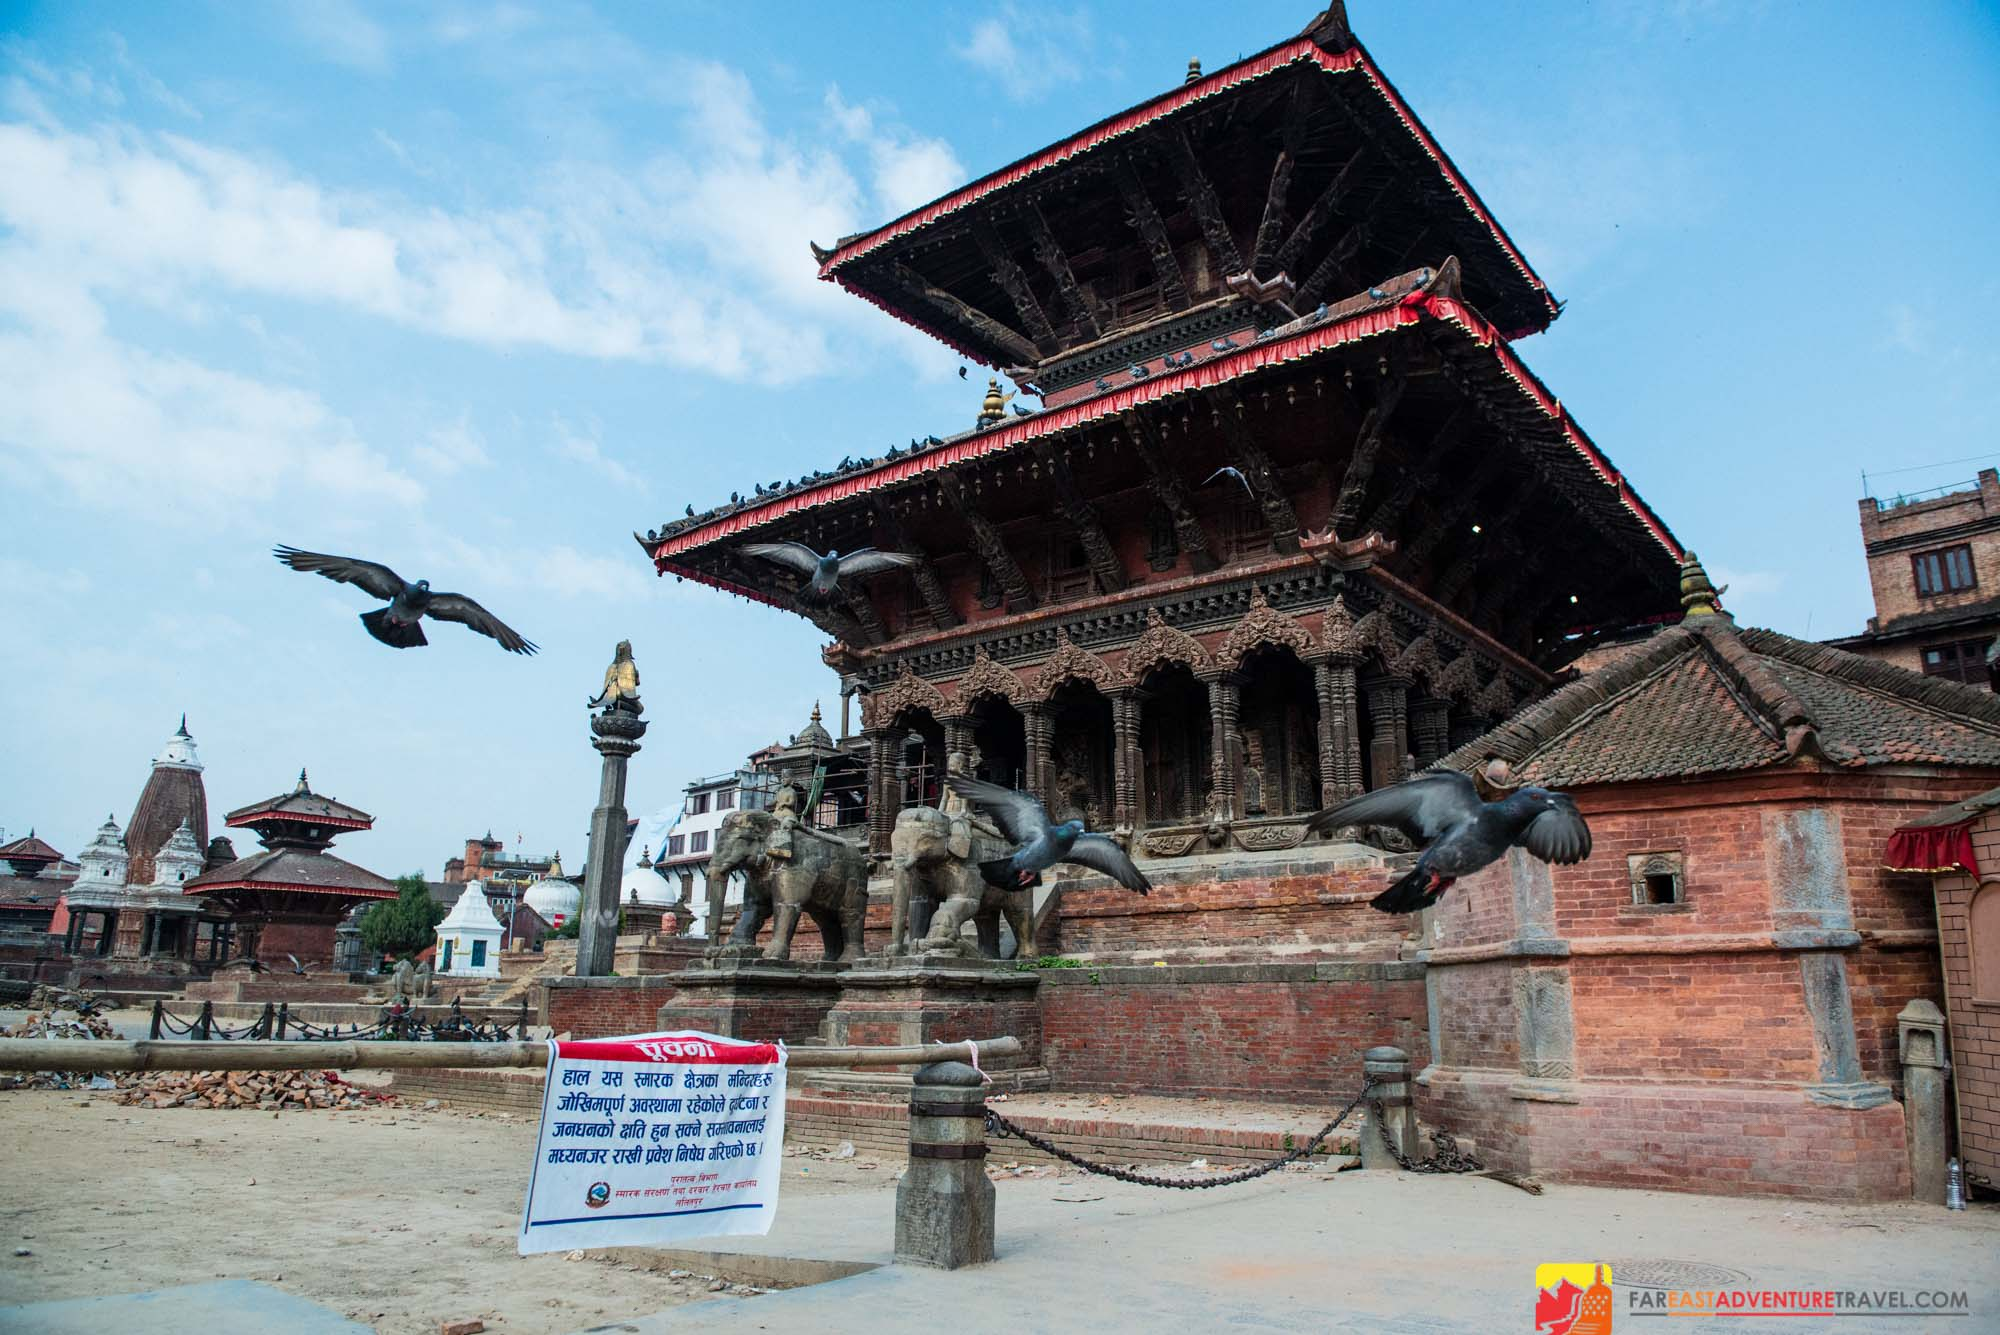 Patan's Durbar Square was closed for several weeks following the earthquakes of 2015. It is currently open to the public.